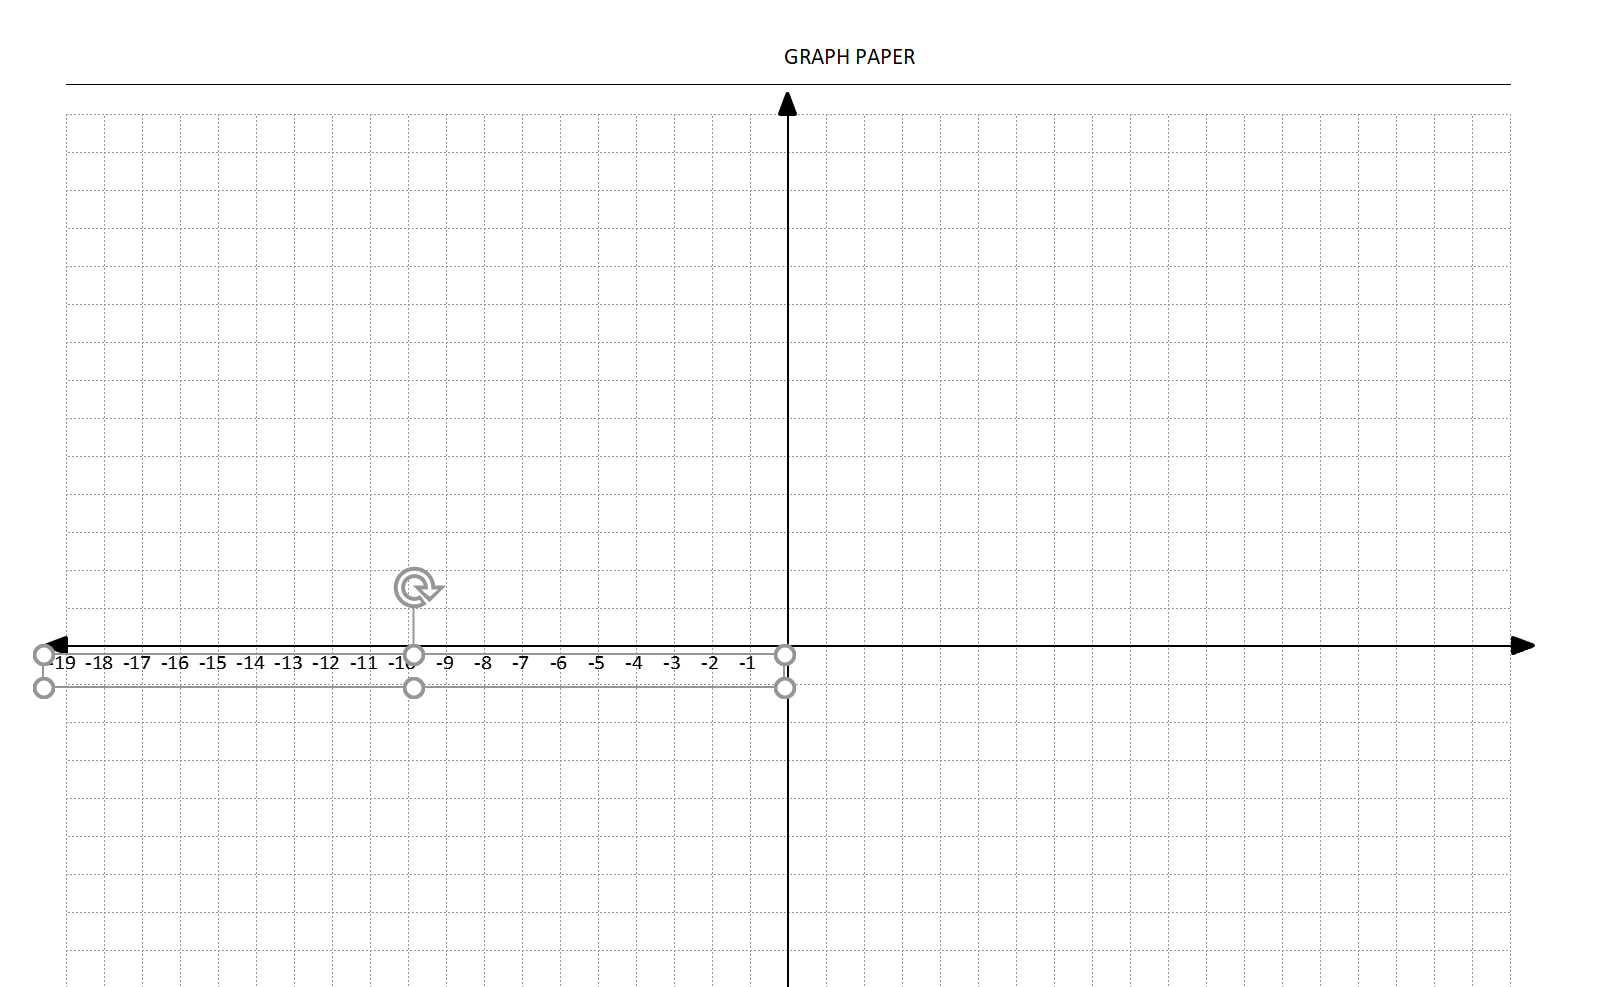 Coordinate Graph Paper Template with Axis and Labels Original Label